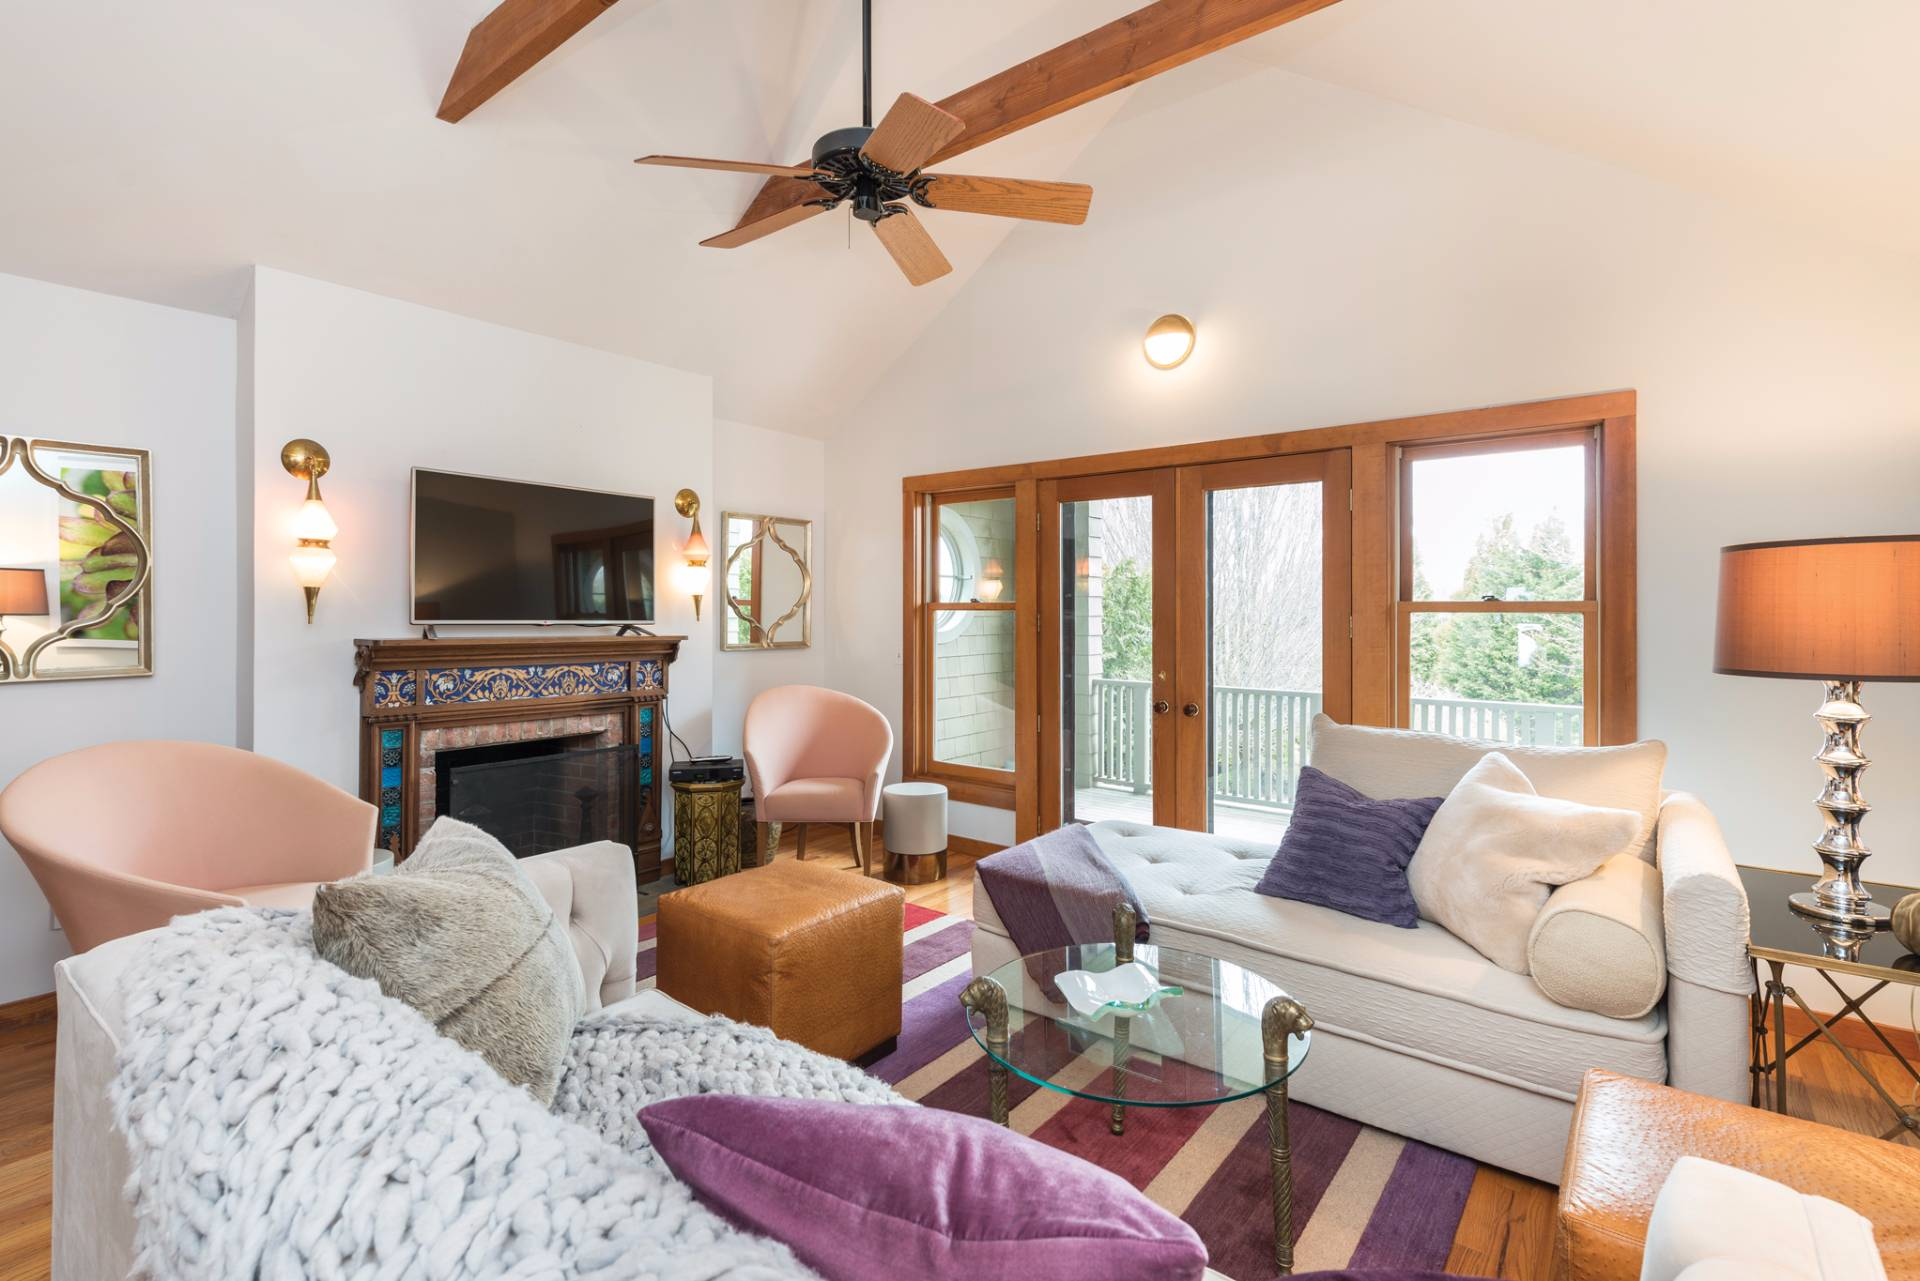 Additional photo for property listing at Great One Bedroom Apartment In The Heart Of Bridgehampton  Bridgehampton, Nueva York